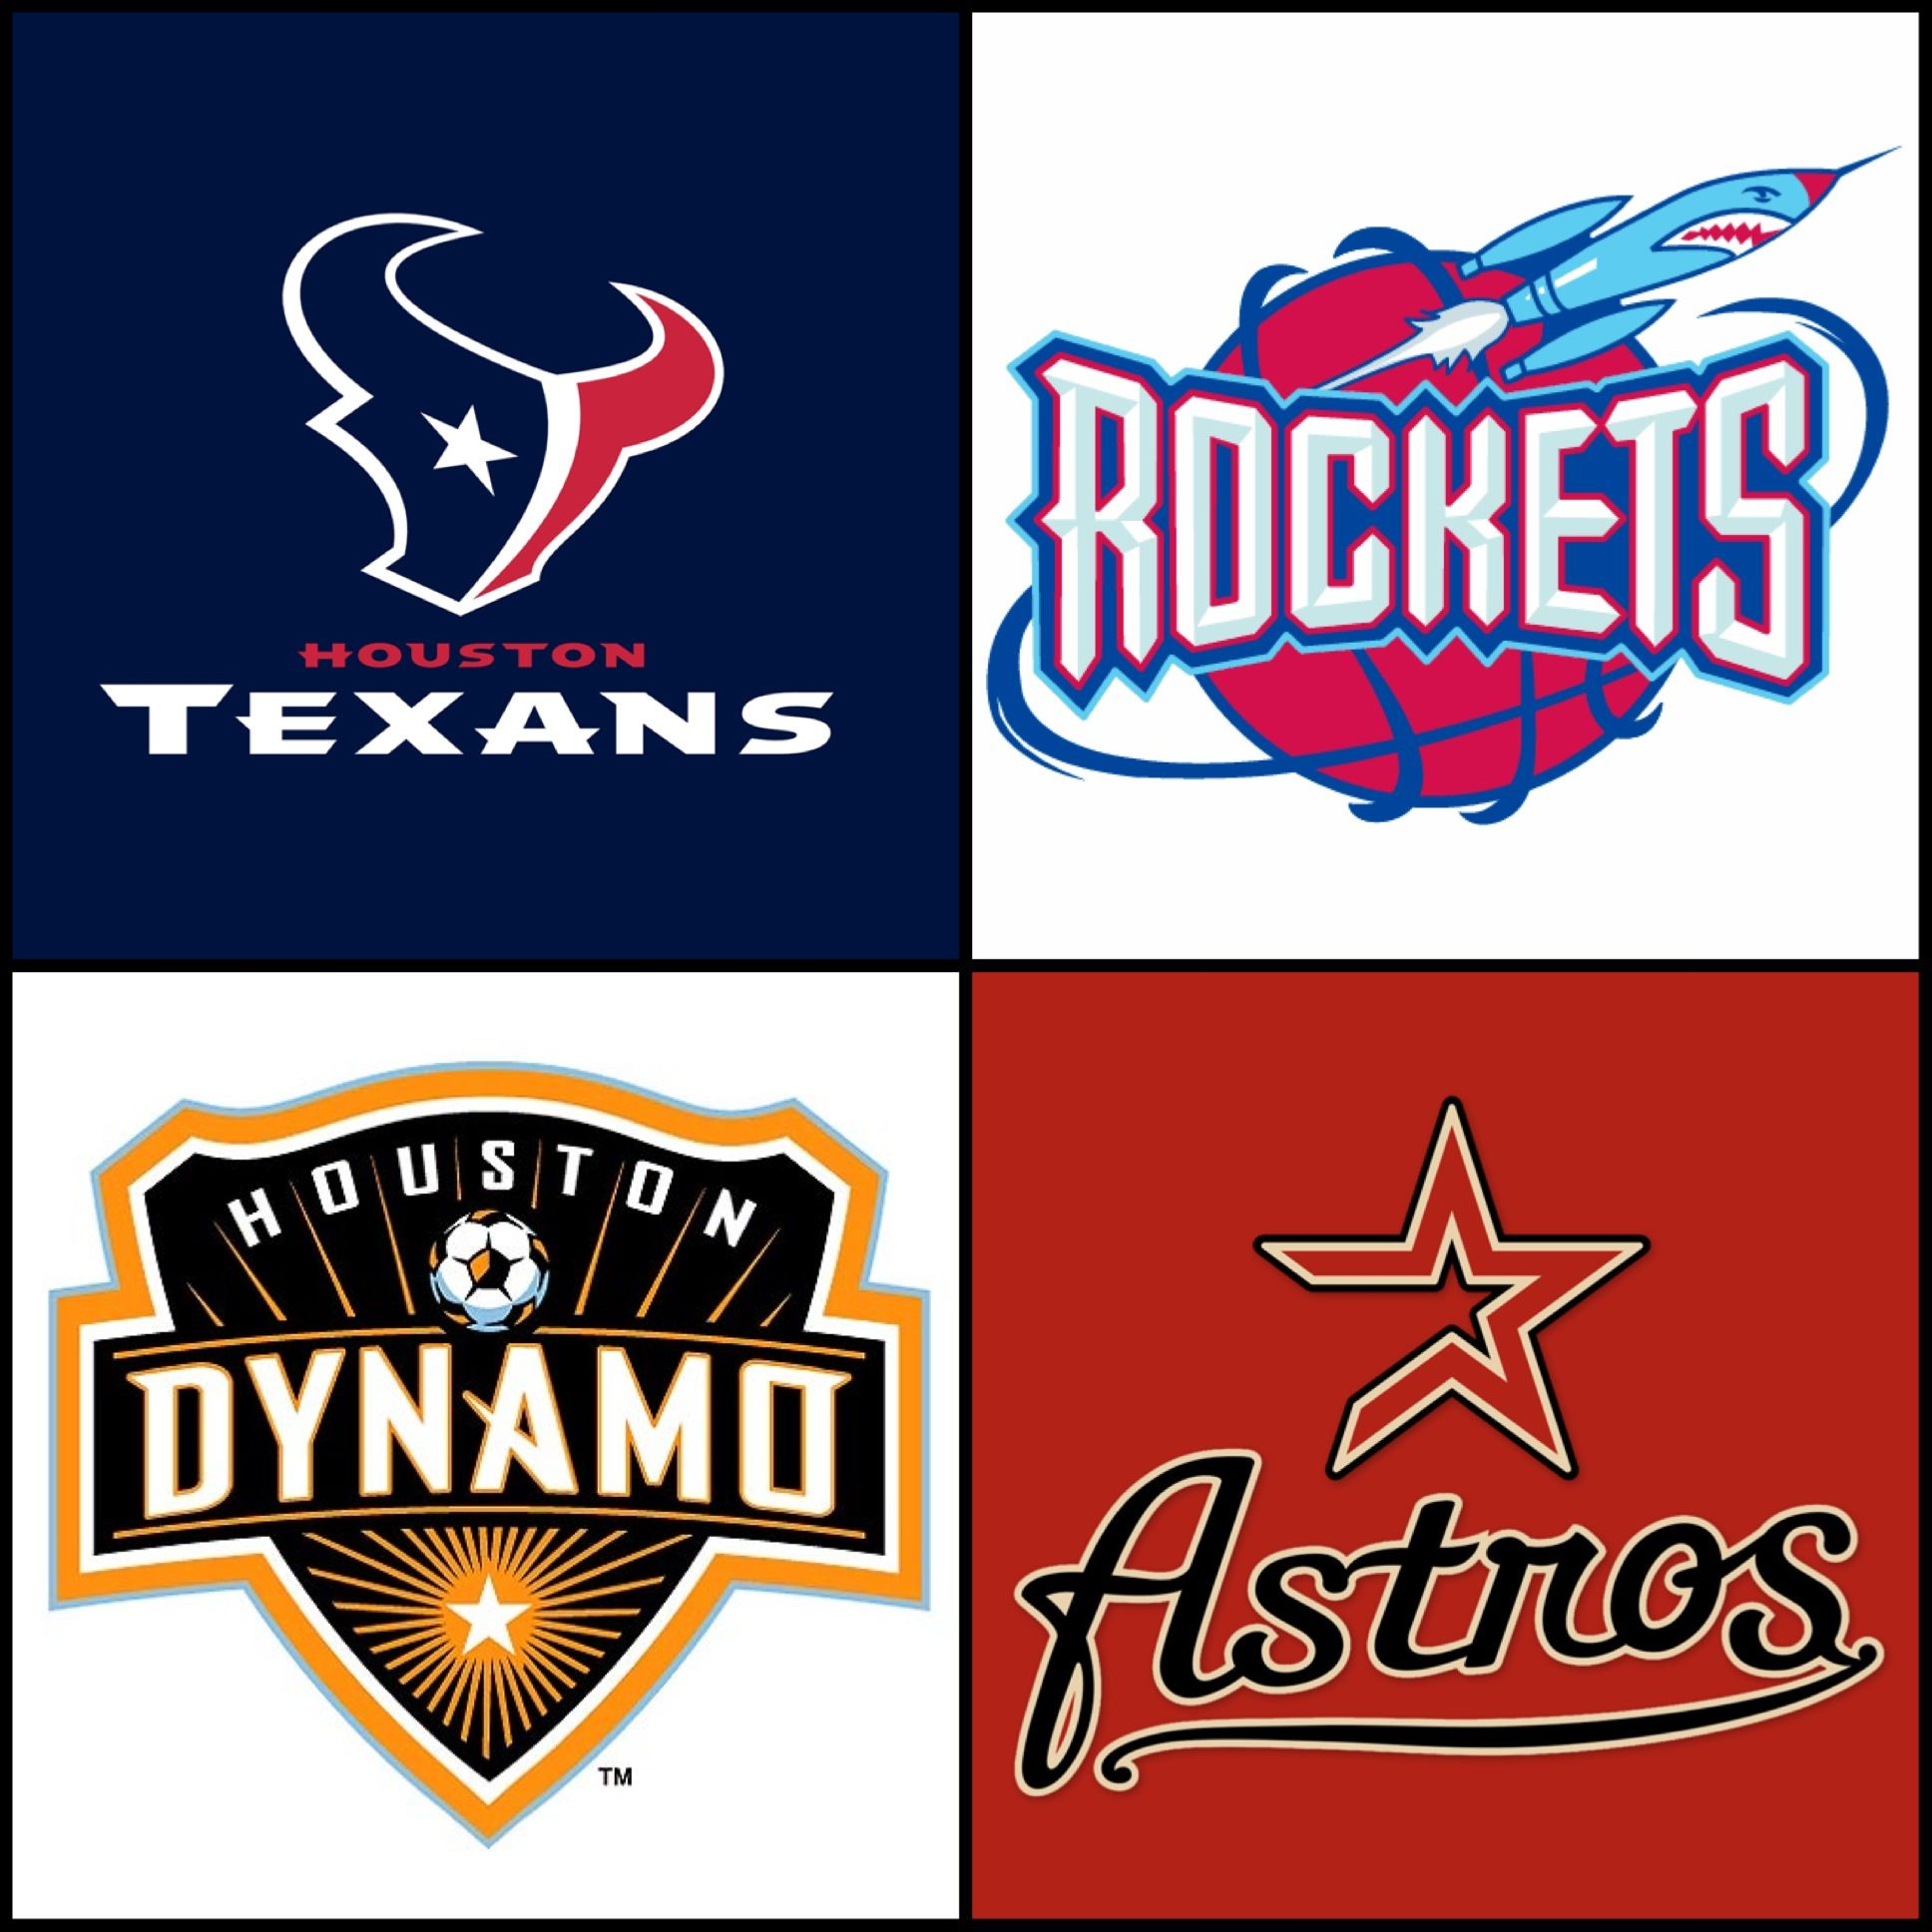 HOUSTON! WE ROCK!!! Texans Football, Rockets Basketball